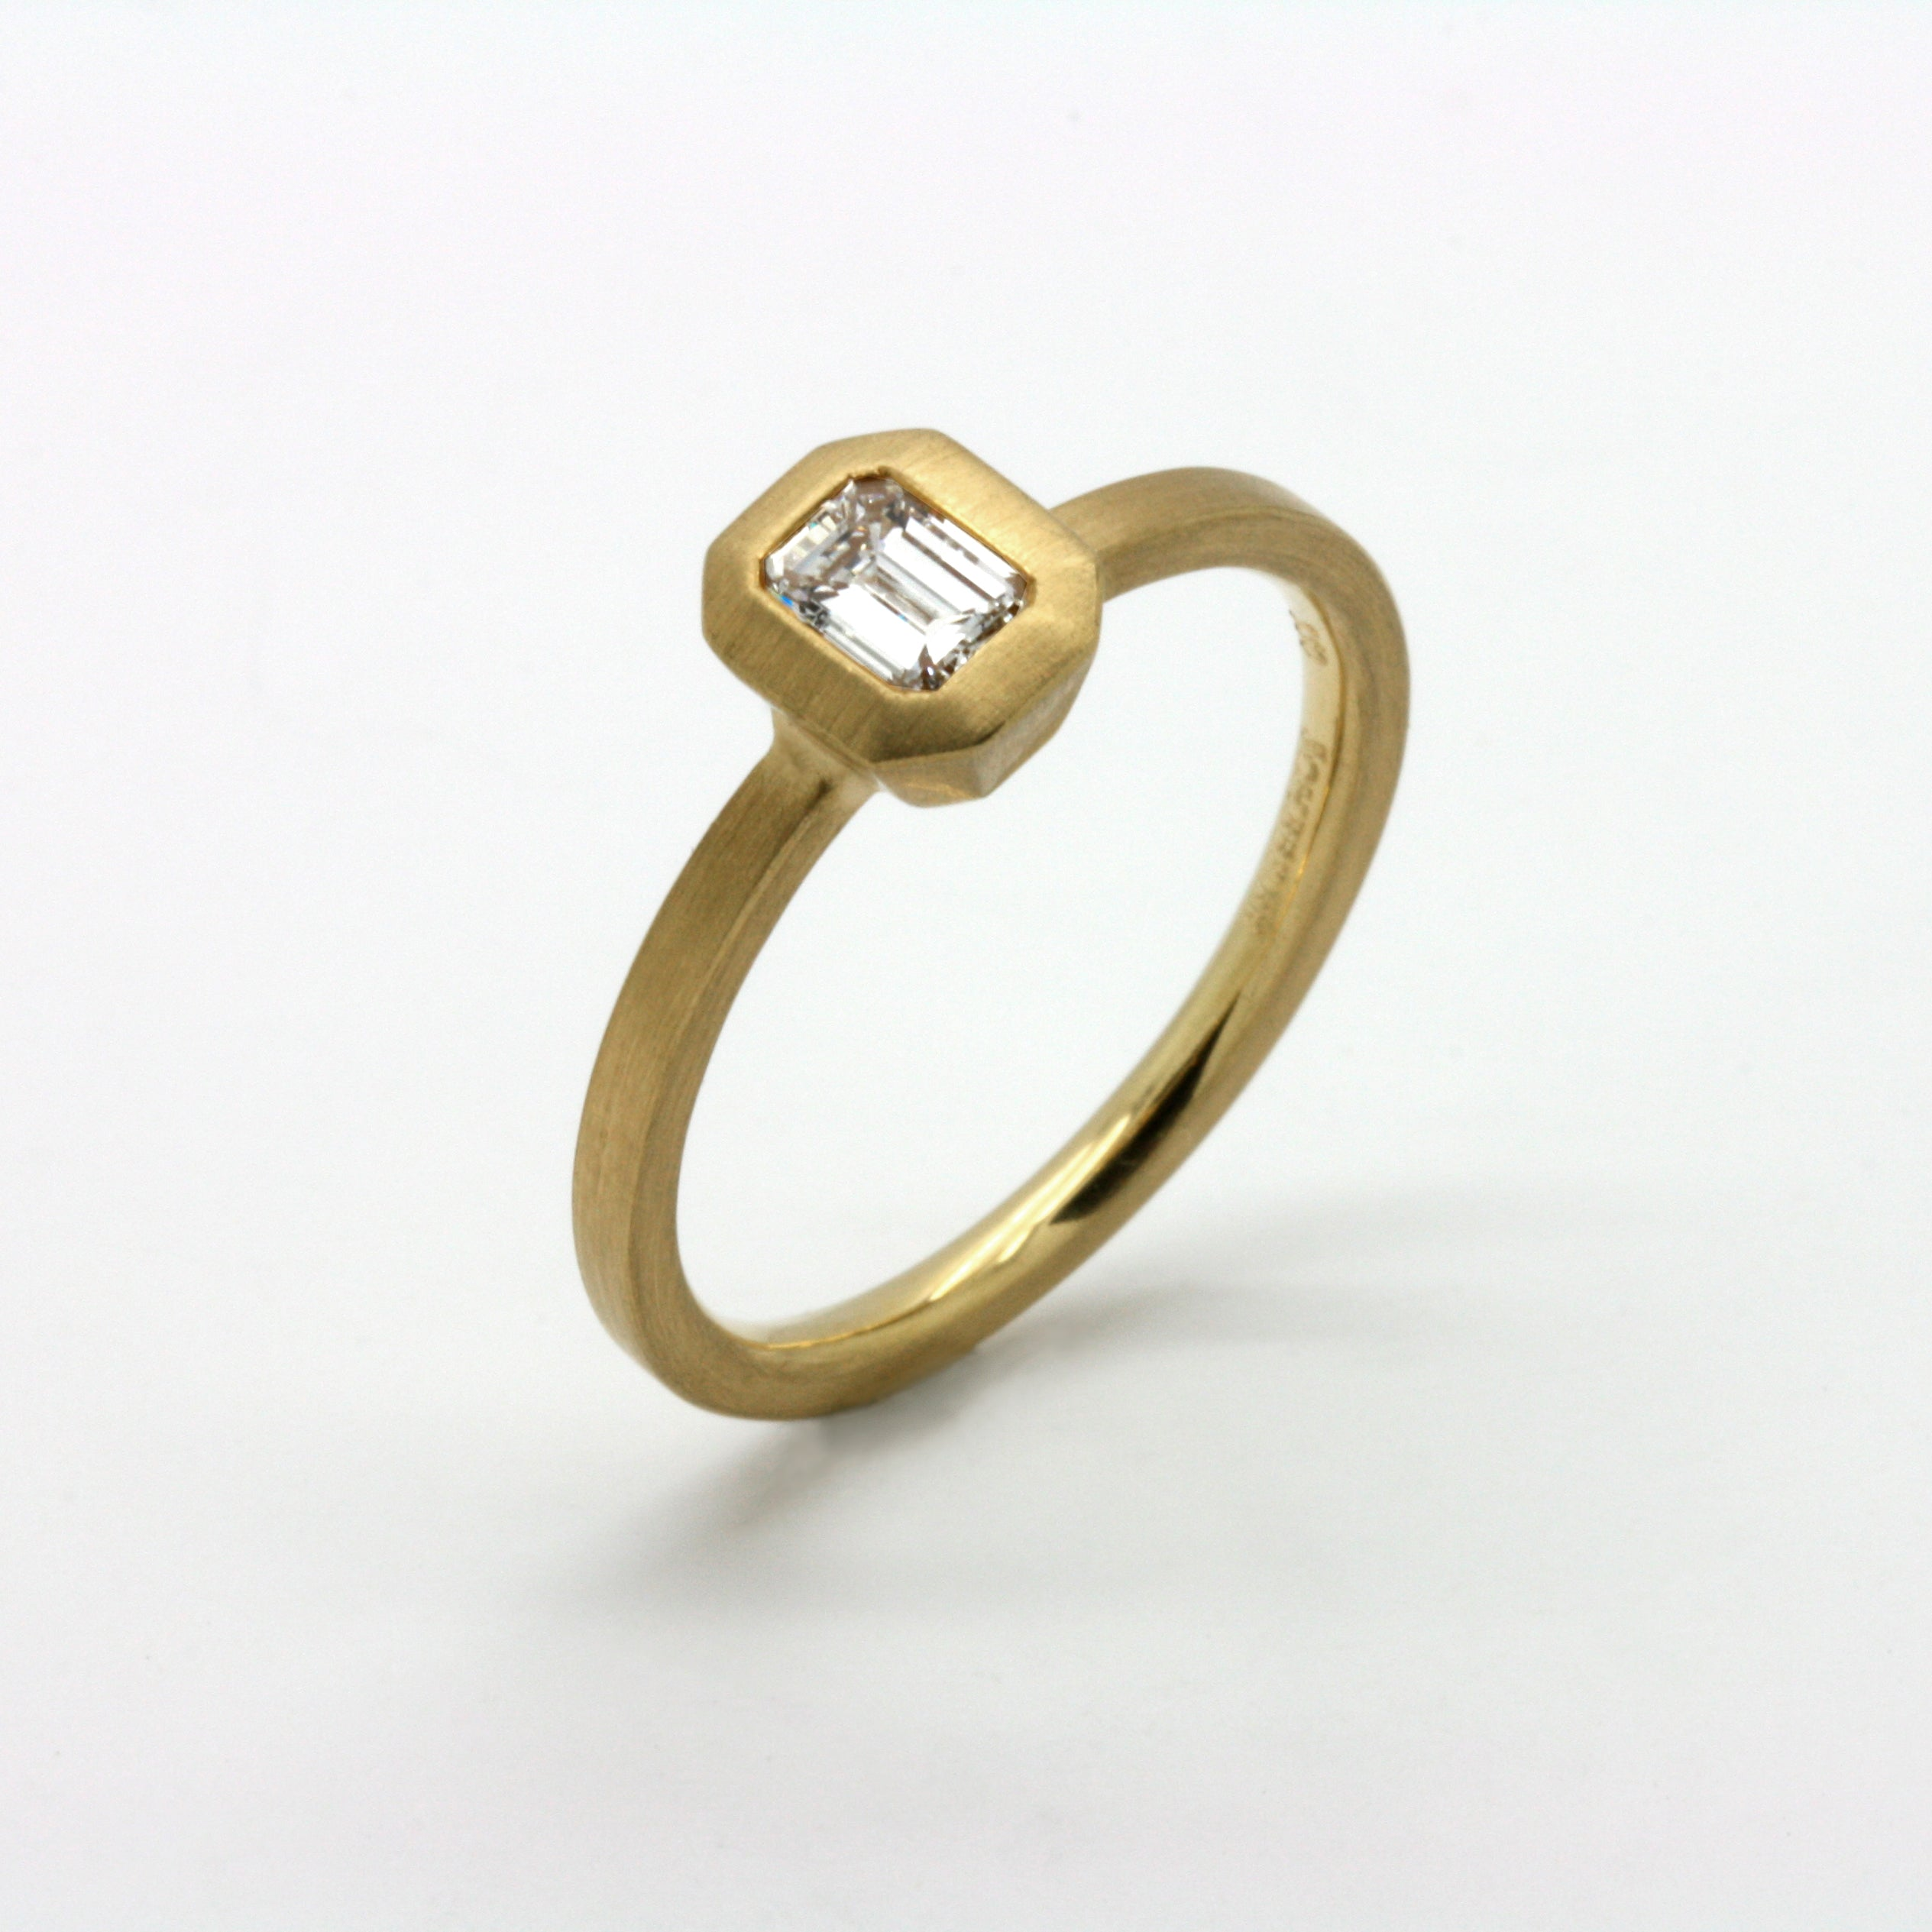 Gold ring with emerald cut diamond - renescheerer